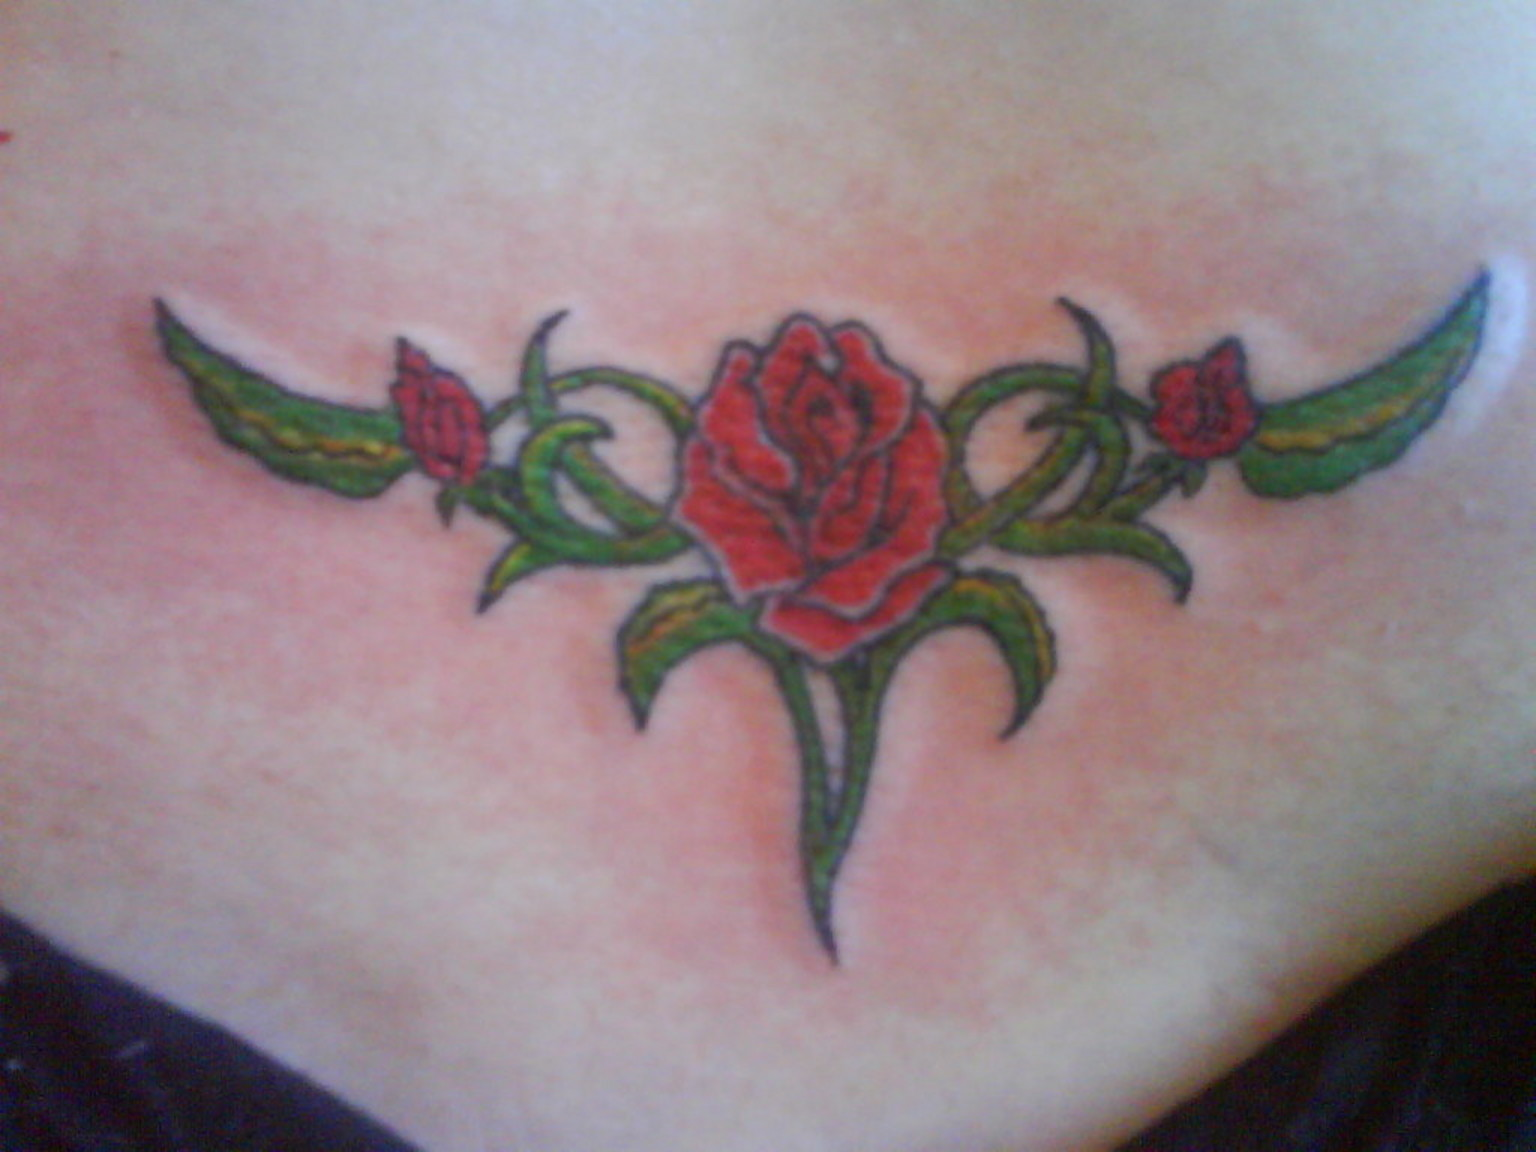 Lower+back+tattoos Bodytribaltattoosblogspotcom Lower Back Tattoos